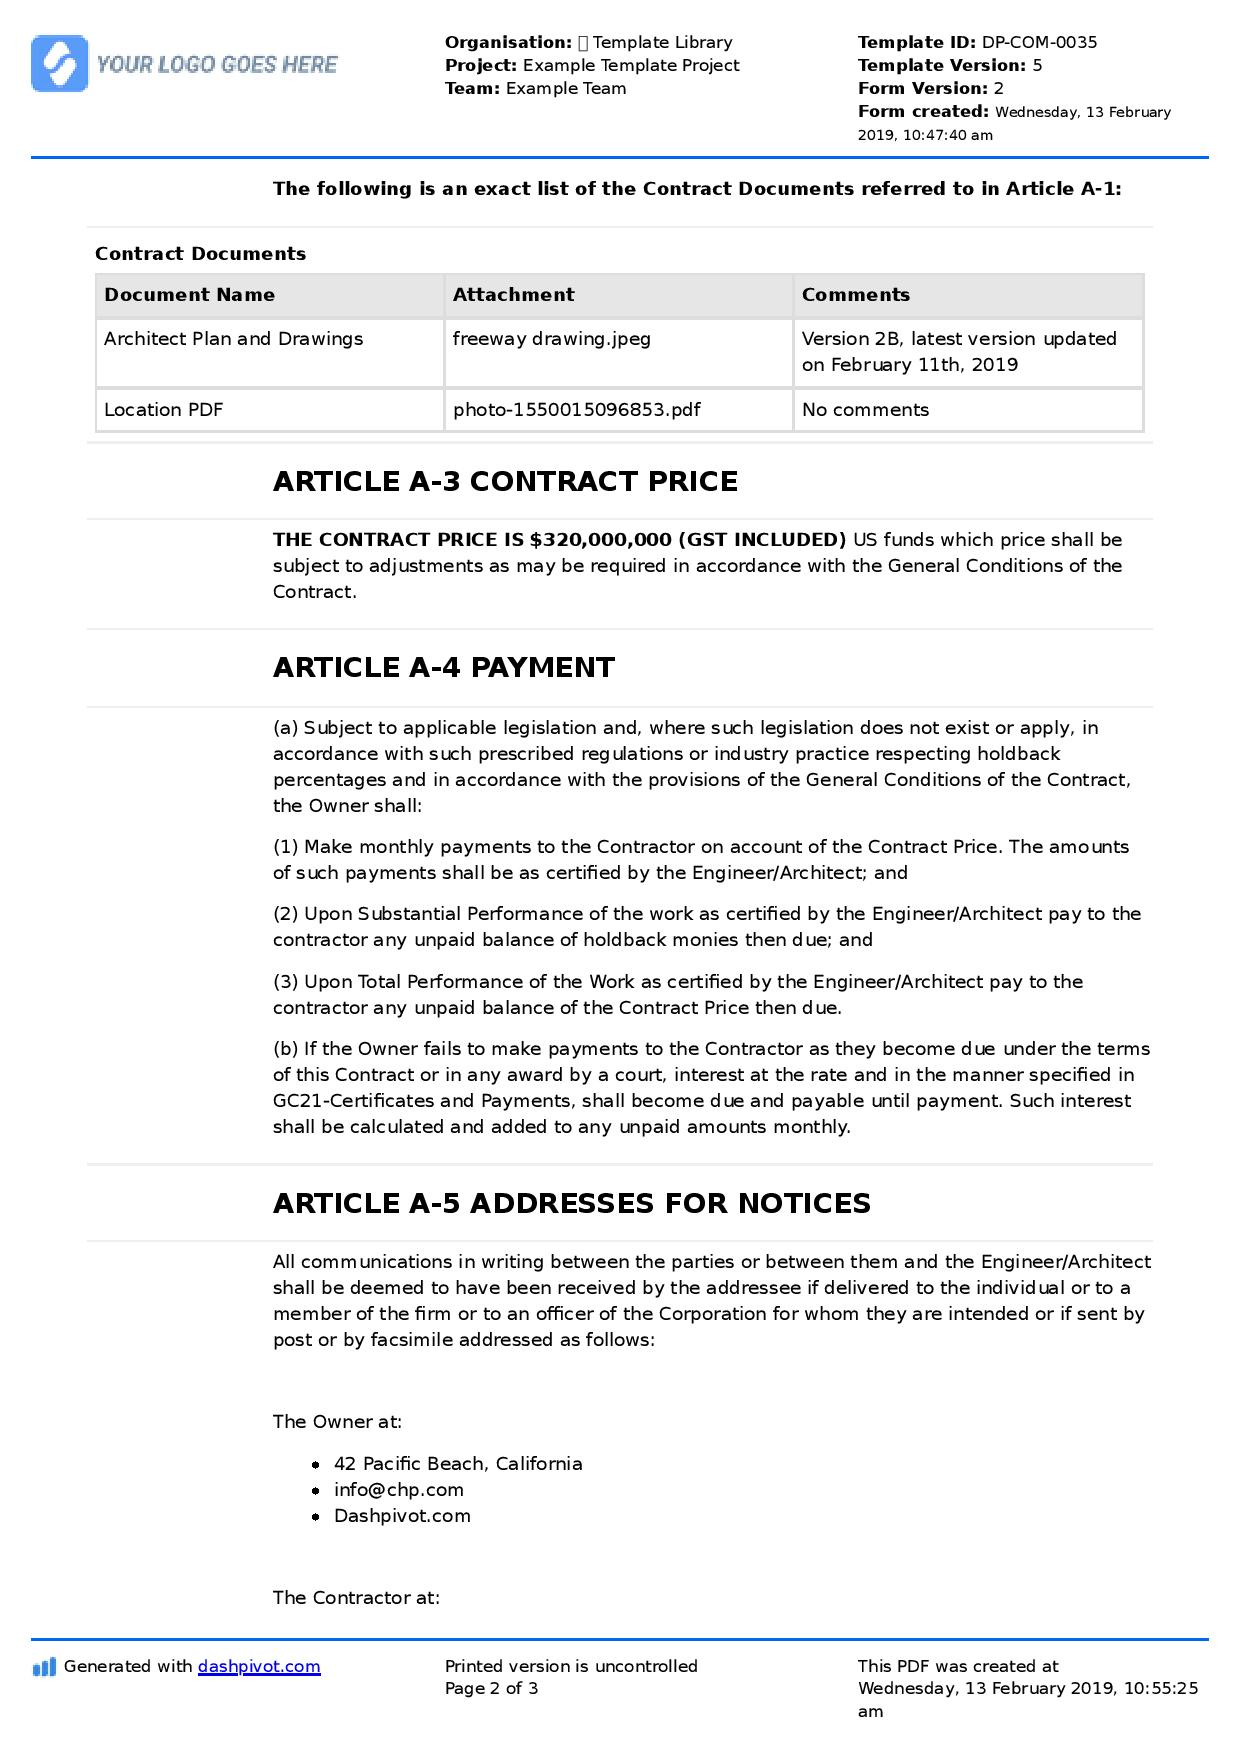 Contract Agreement For Construction Work Sample Template